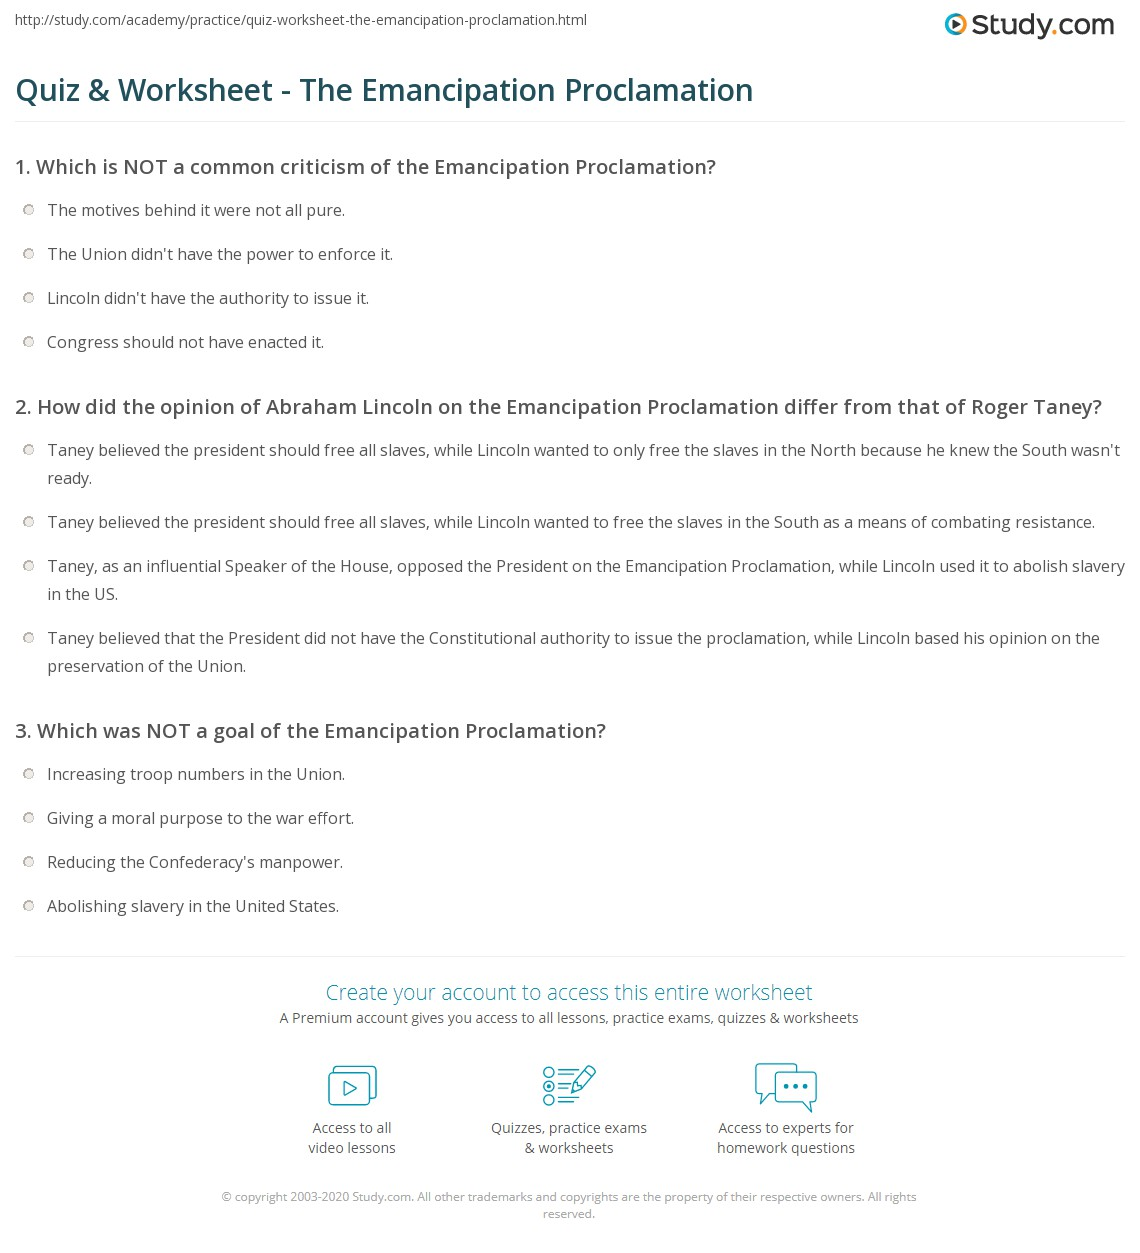 quiz worksheet the emancipation proclamation com print the emancipation proclamation creation context and legacy worksheet